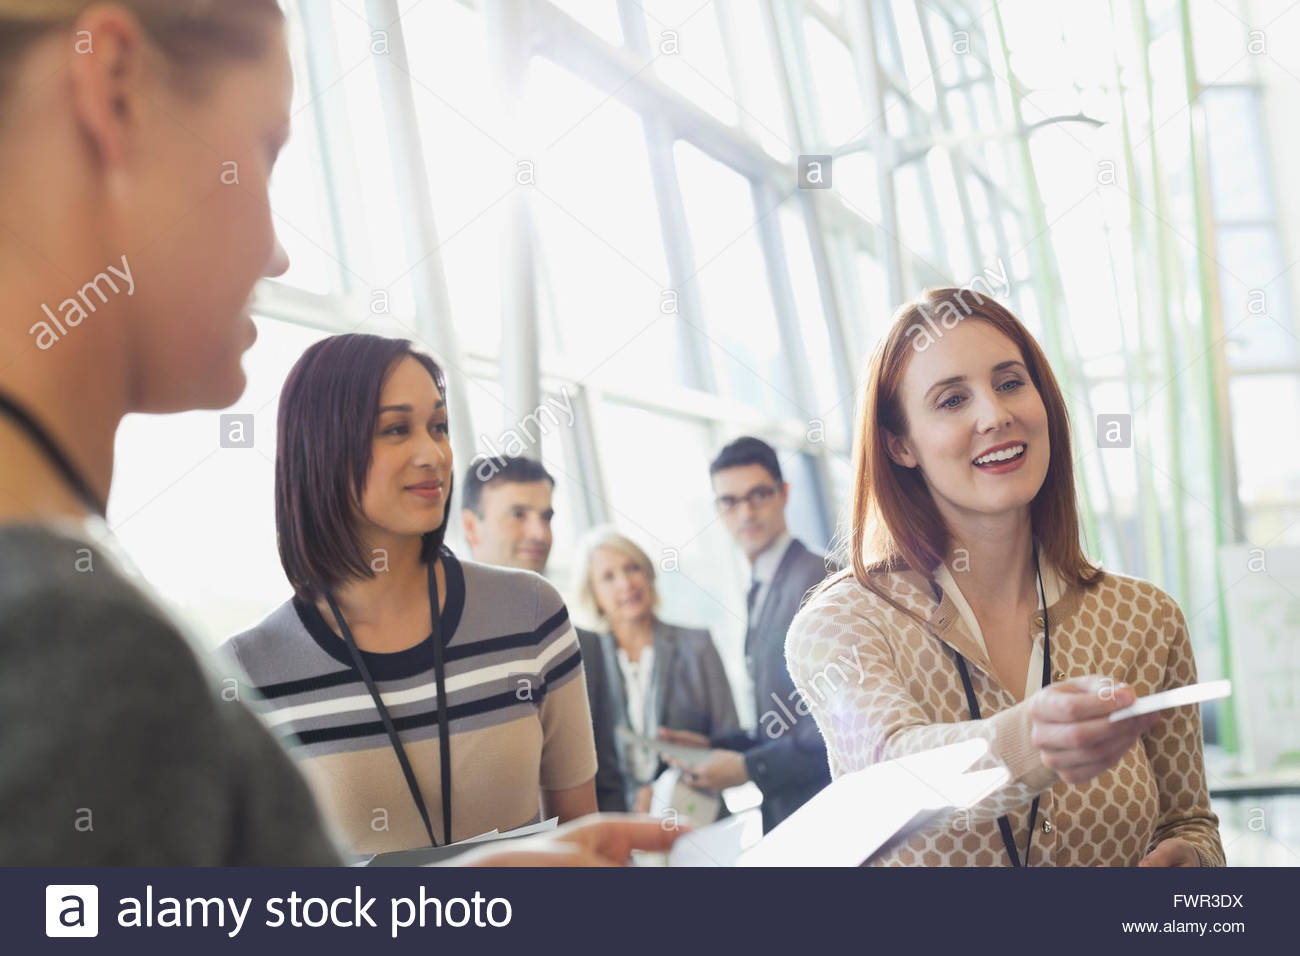 Handing out business cards stock photos handing out business cards businesswoman handing business cards out stock image colourmoves